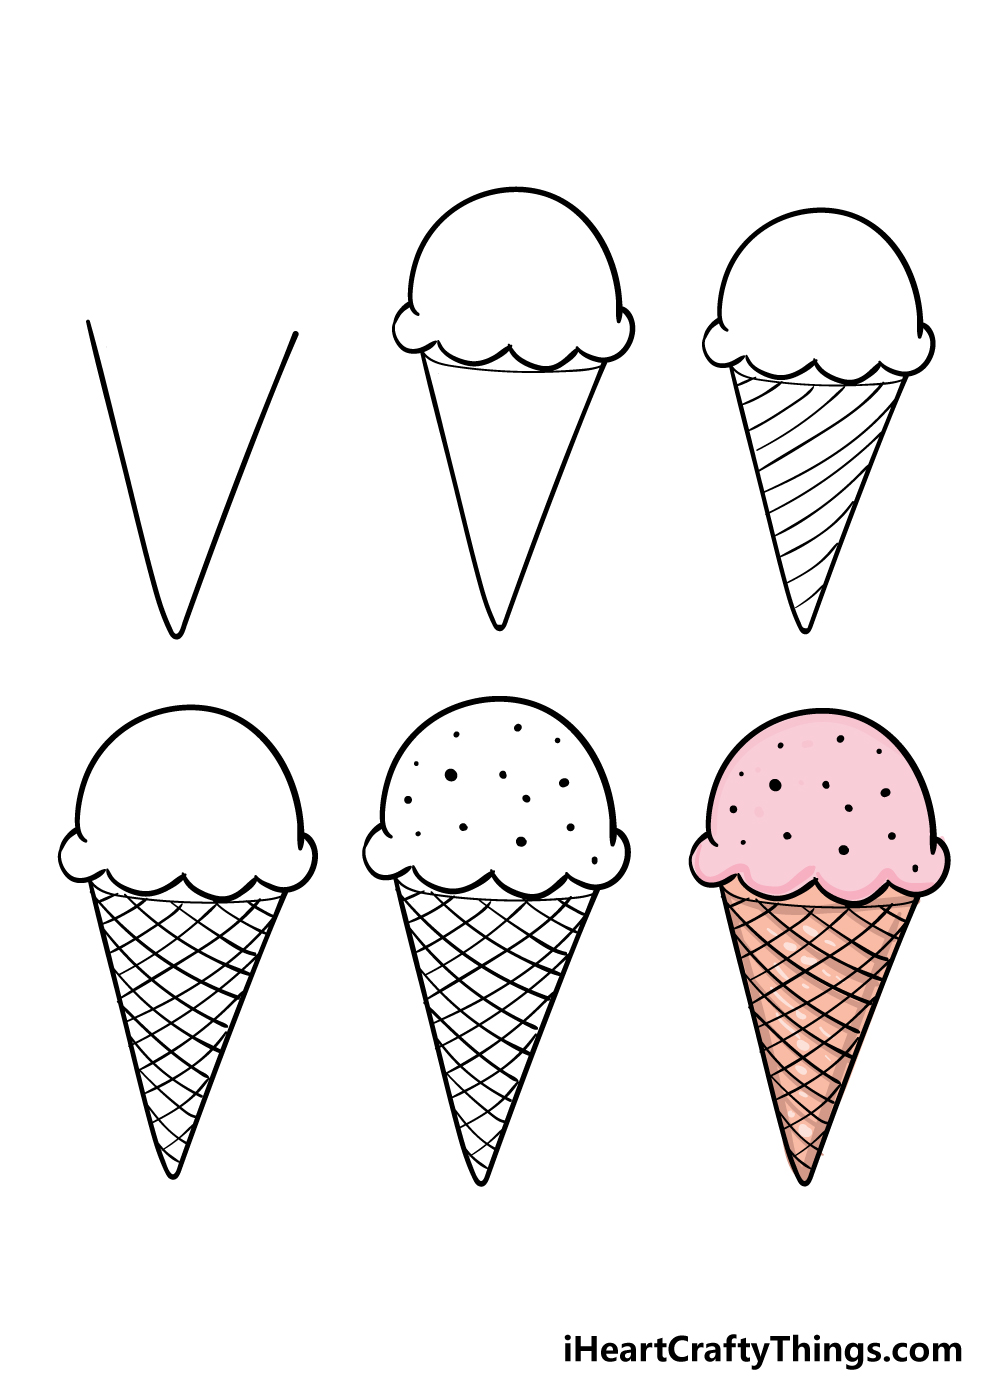 how to draw ice cream cone in 6 steps